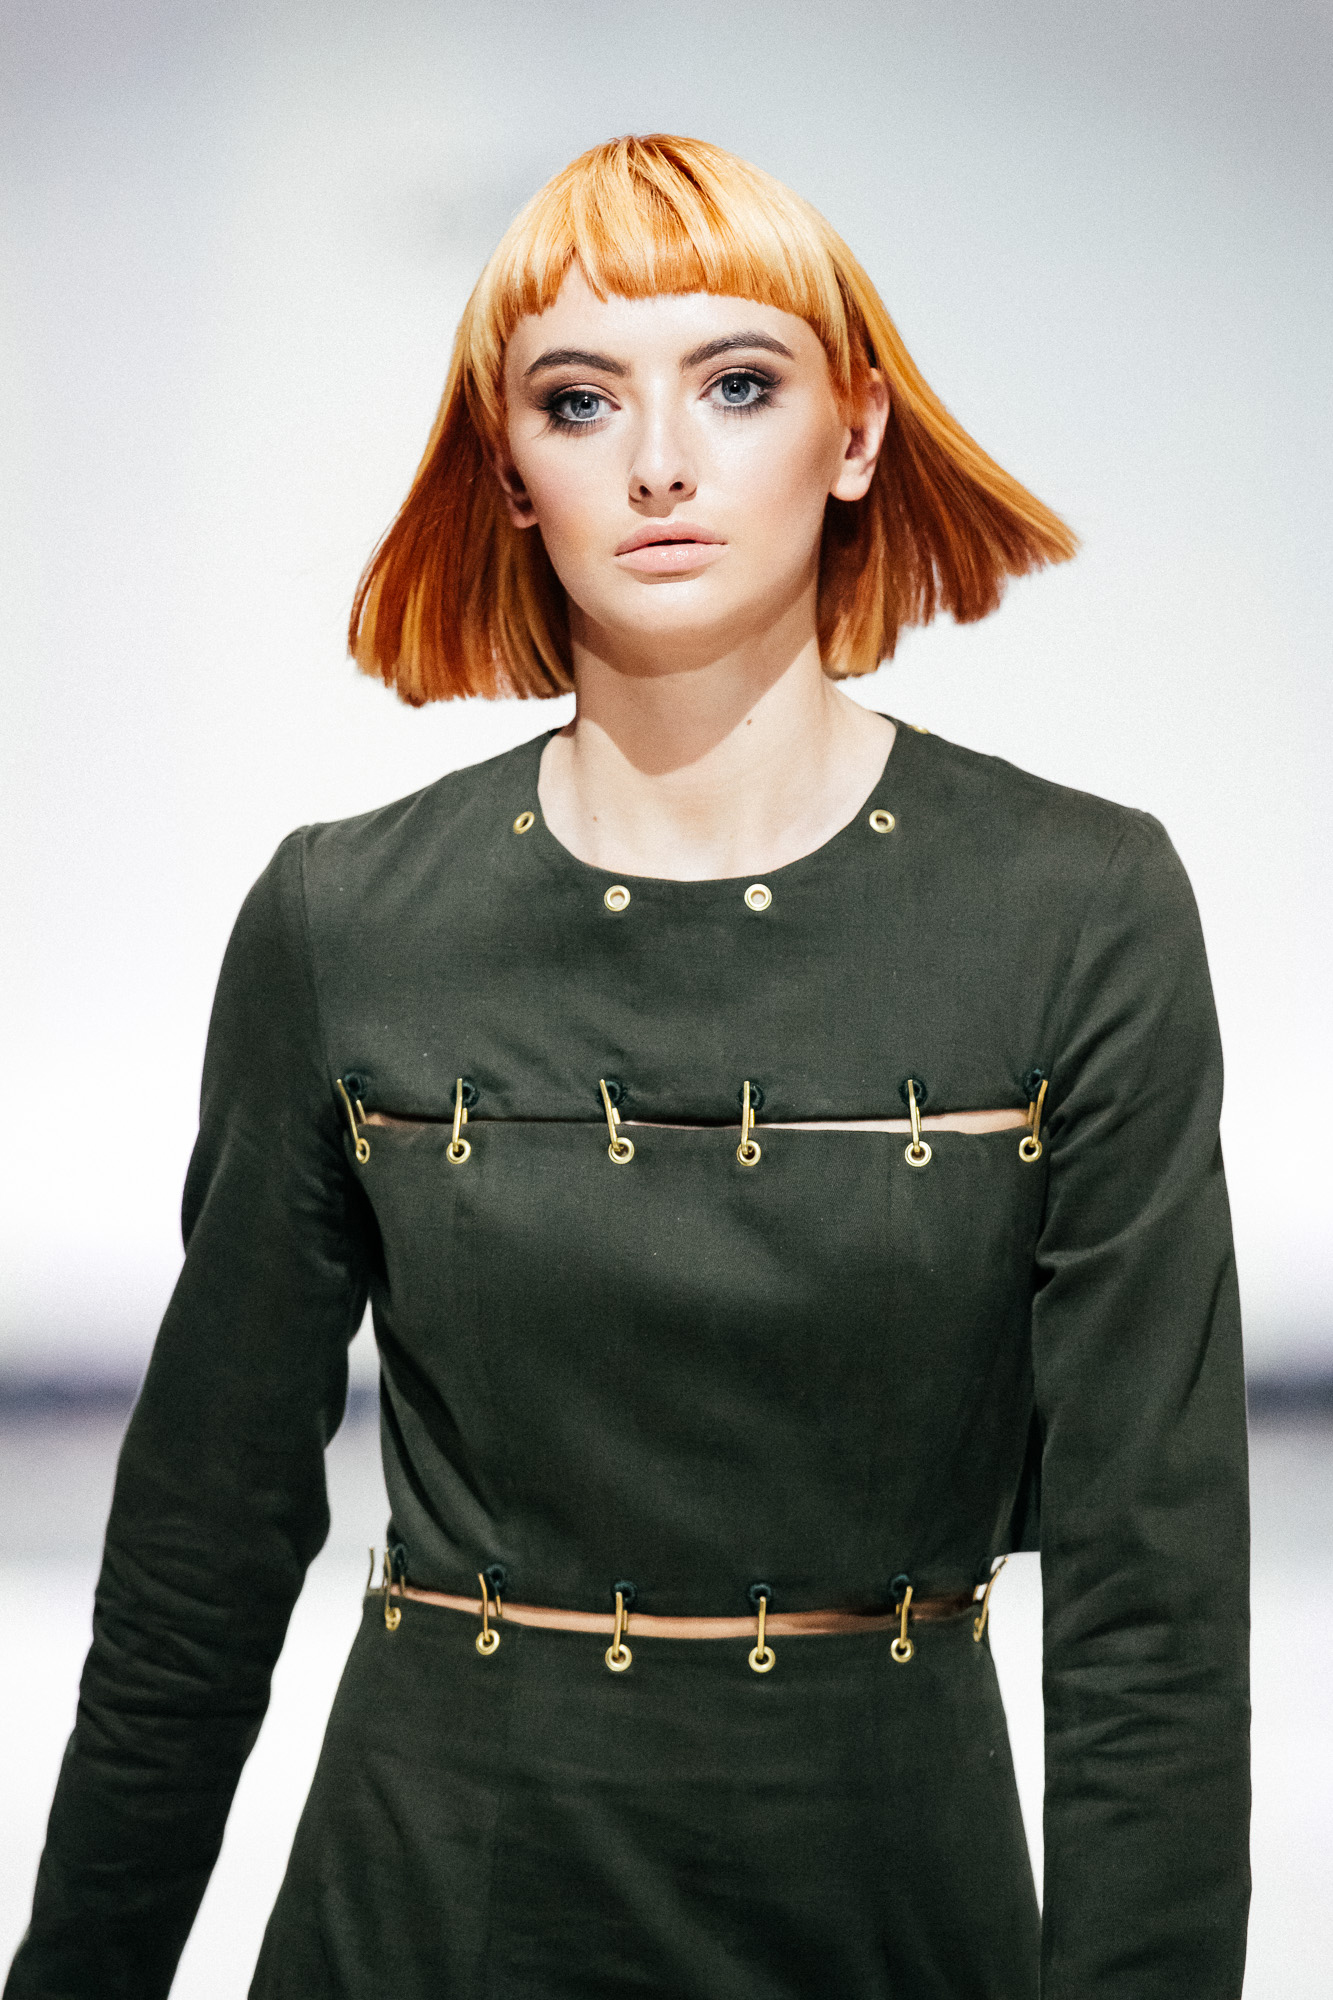 Winner of the L'Oreal Colour Trophy 2016 Award - Dylan Bradshaw Academy, Dublin